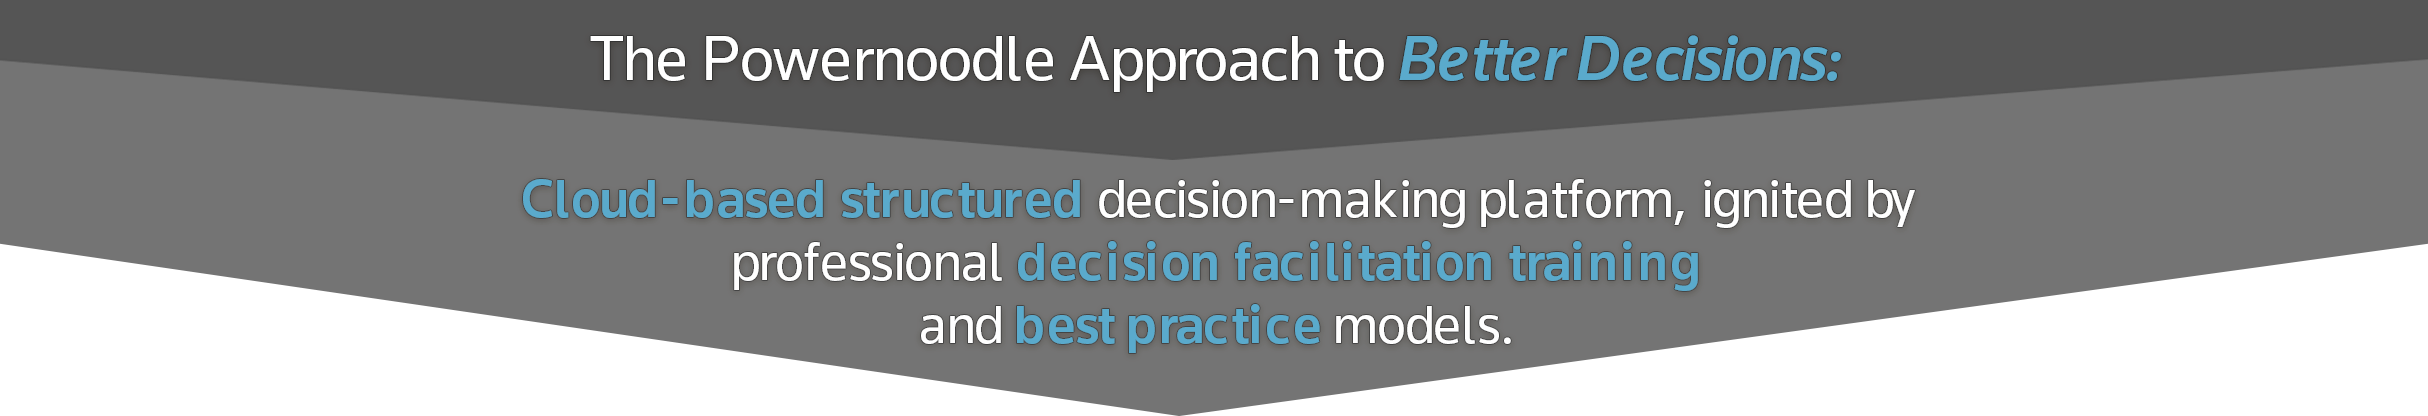 The Powernoodle Approach to better decisions.  Cloud-based structured decision-making platform, ignited by professional decision facilitation training and best practice models.